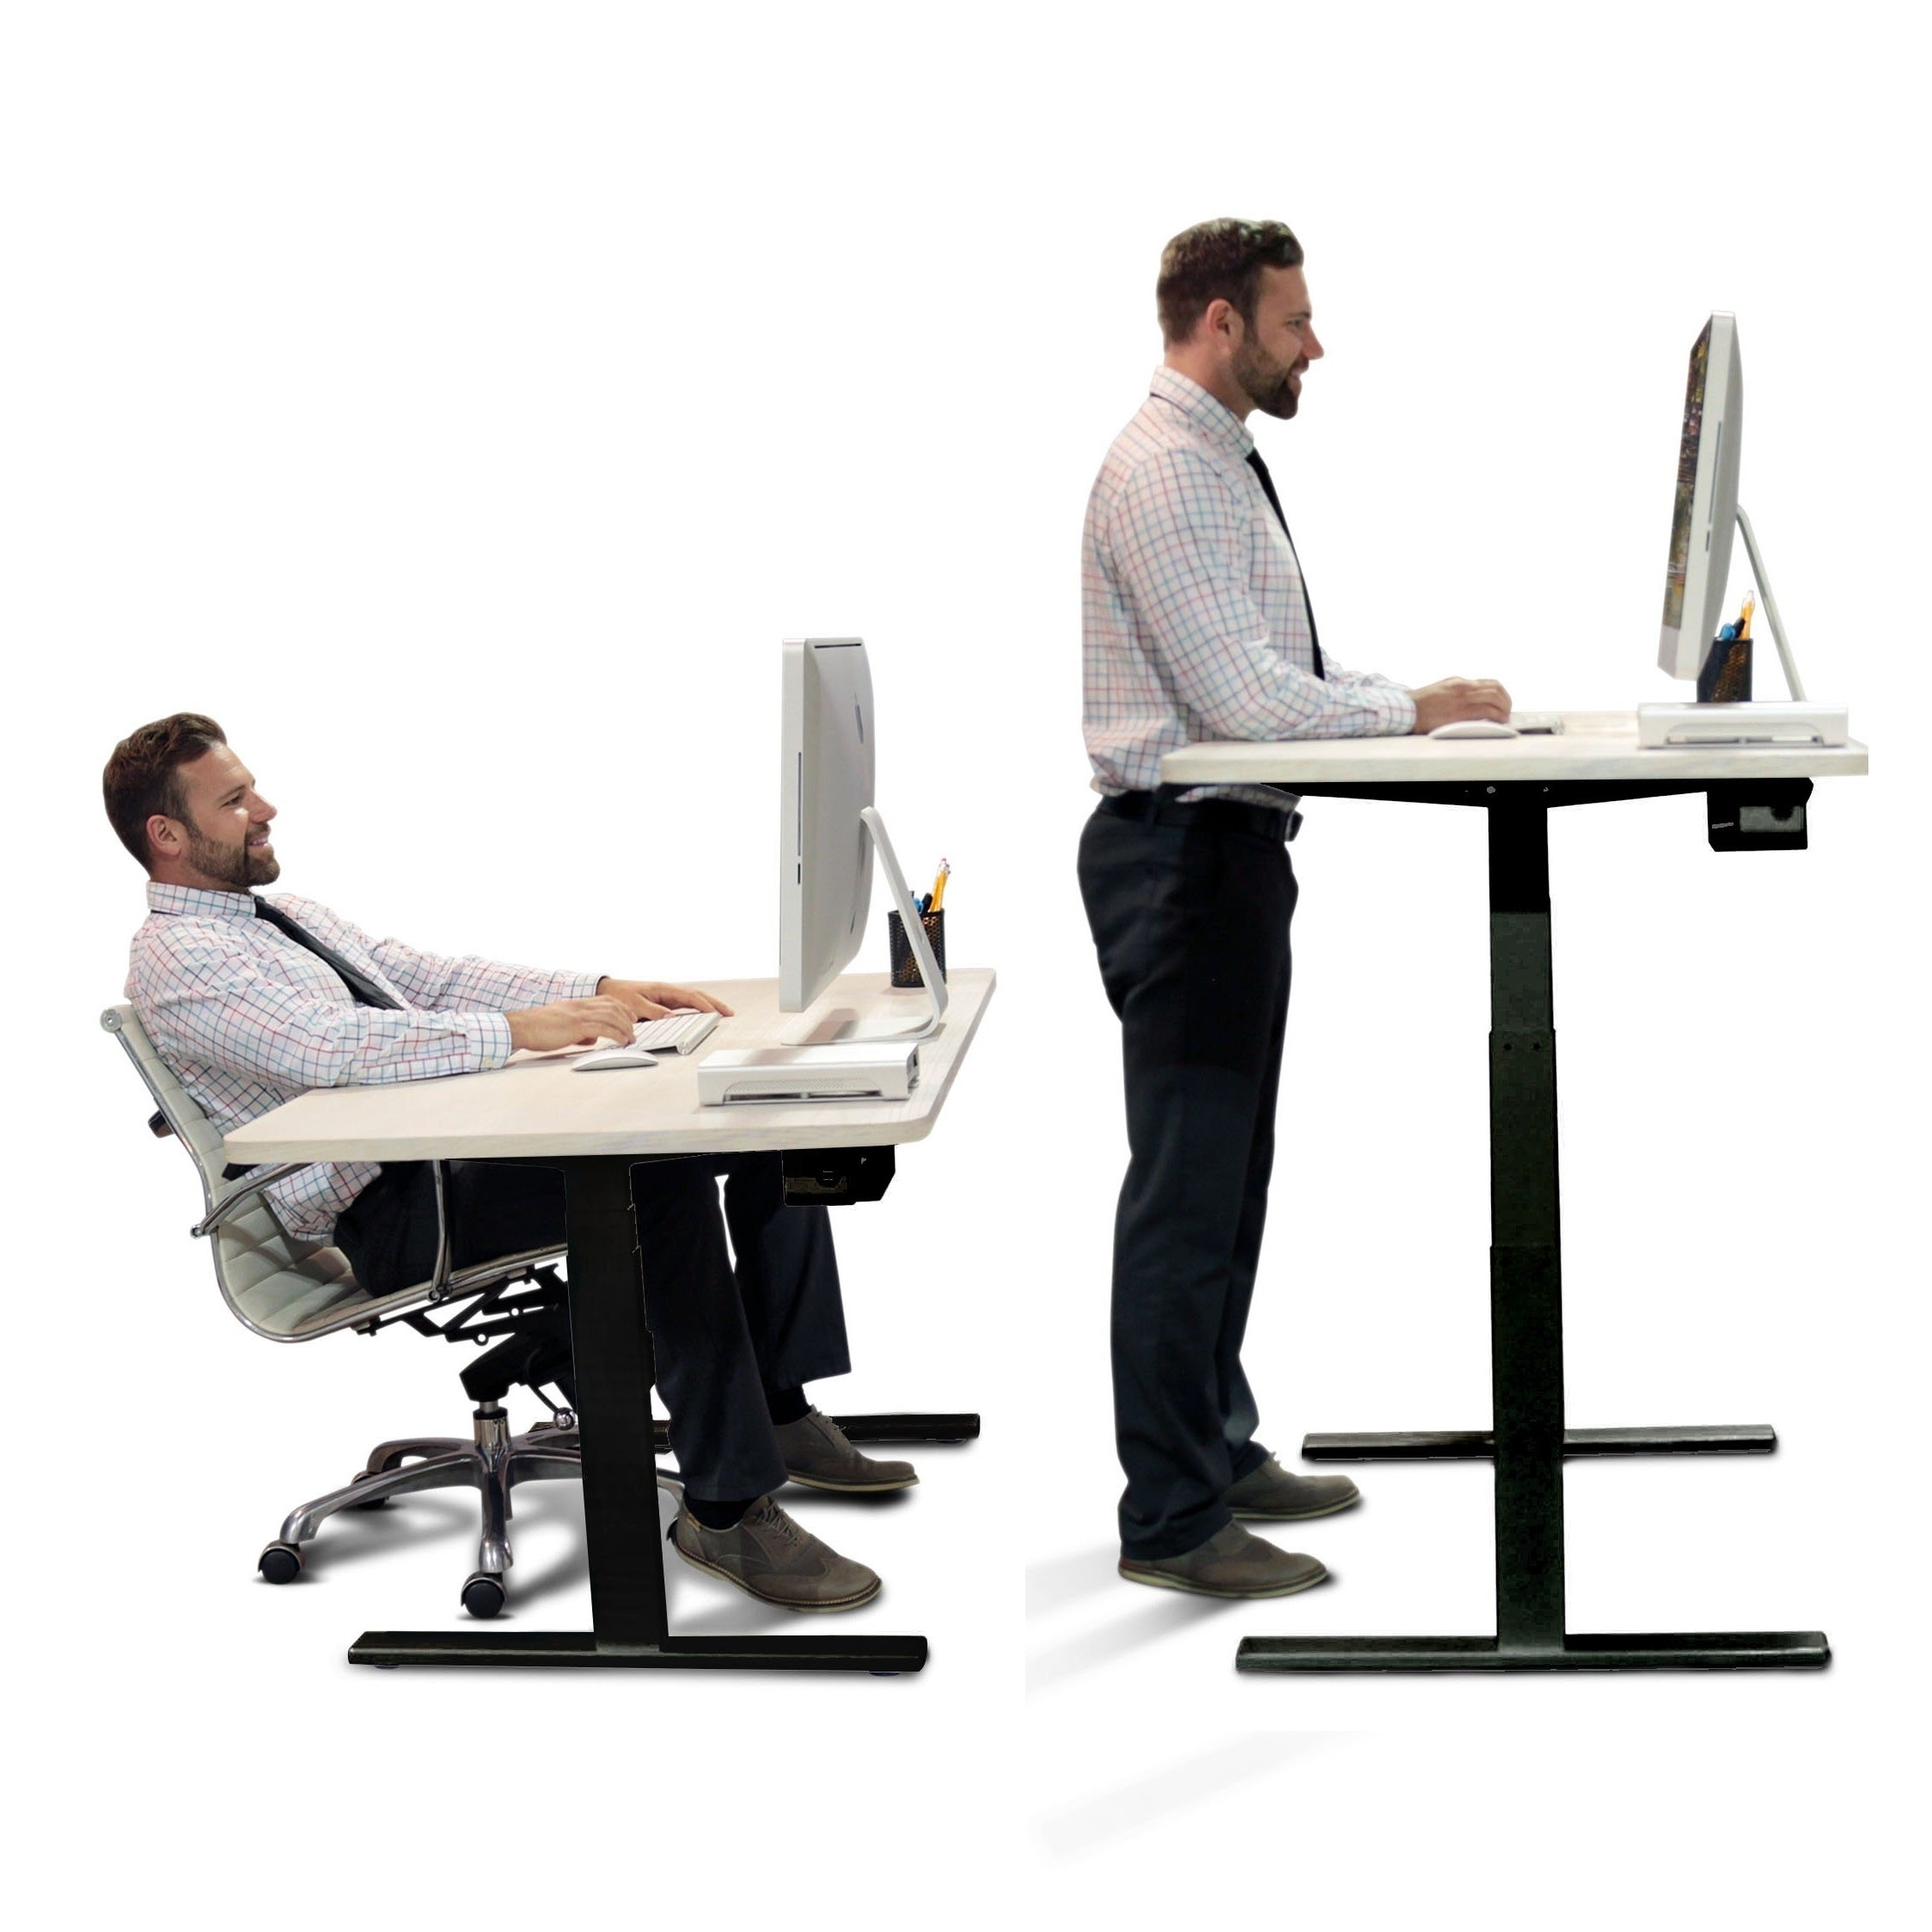 that buying converter desk down best convertible by work adjustable laptop to at frame up easier standing desks stand make electric workstation your height raises and designinyou